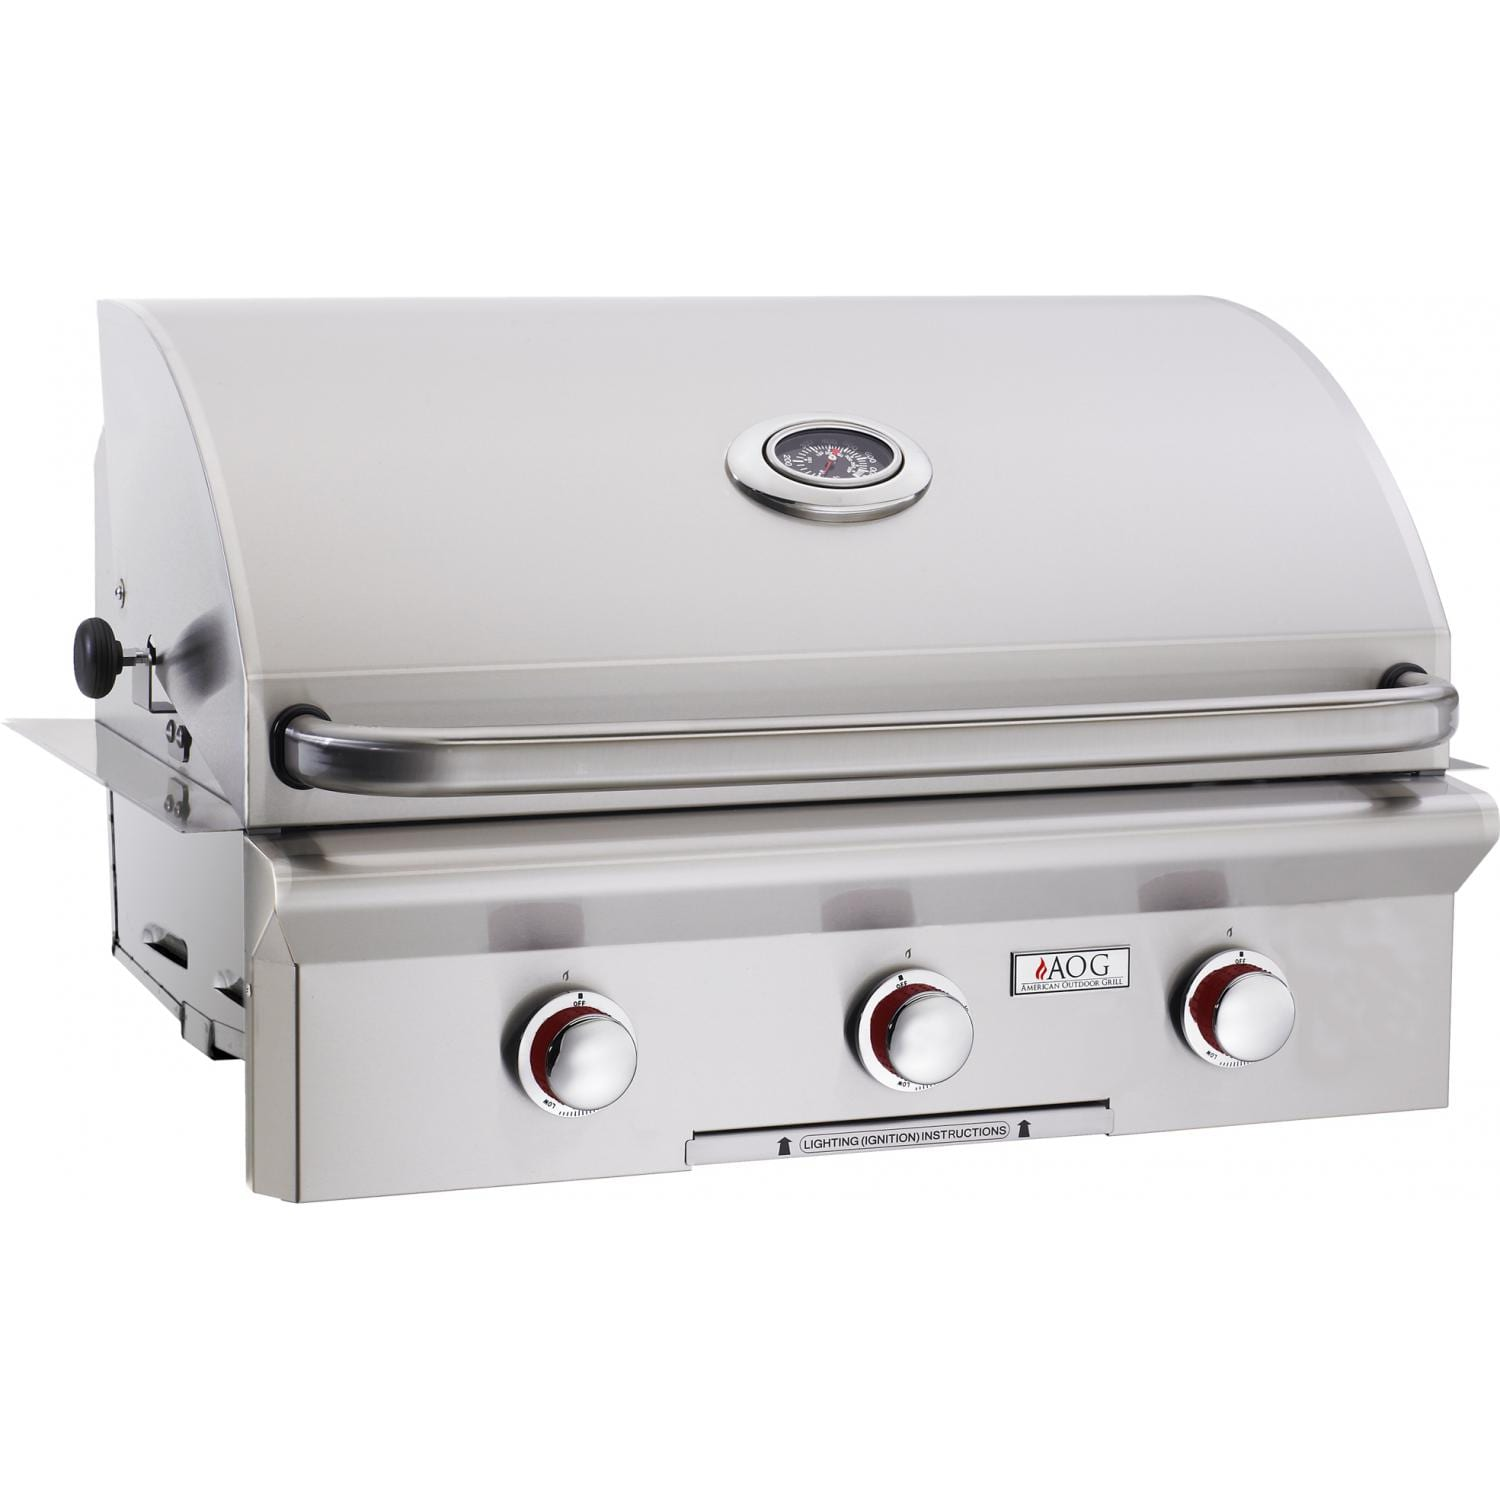 American Outdoor Grill T-Series 30-Inch 3-Burner Propane Gas Grill